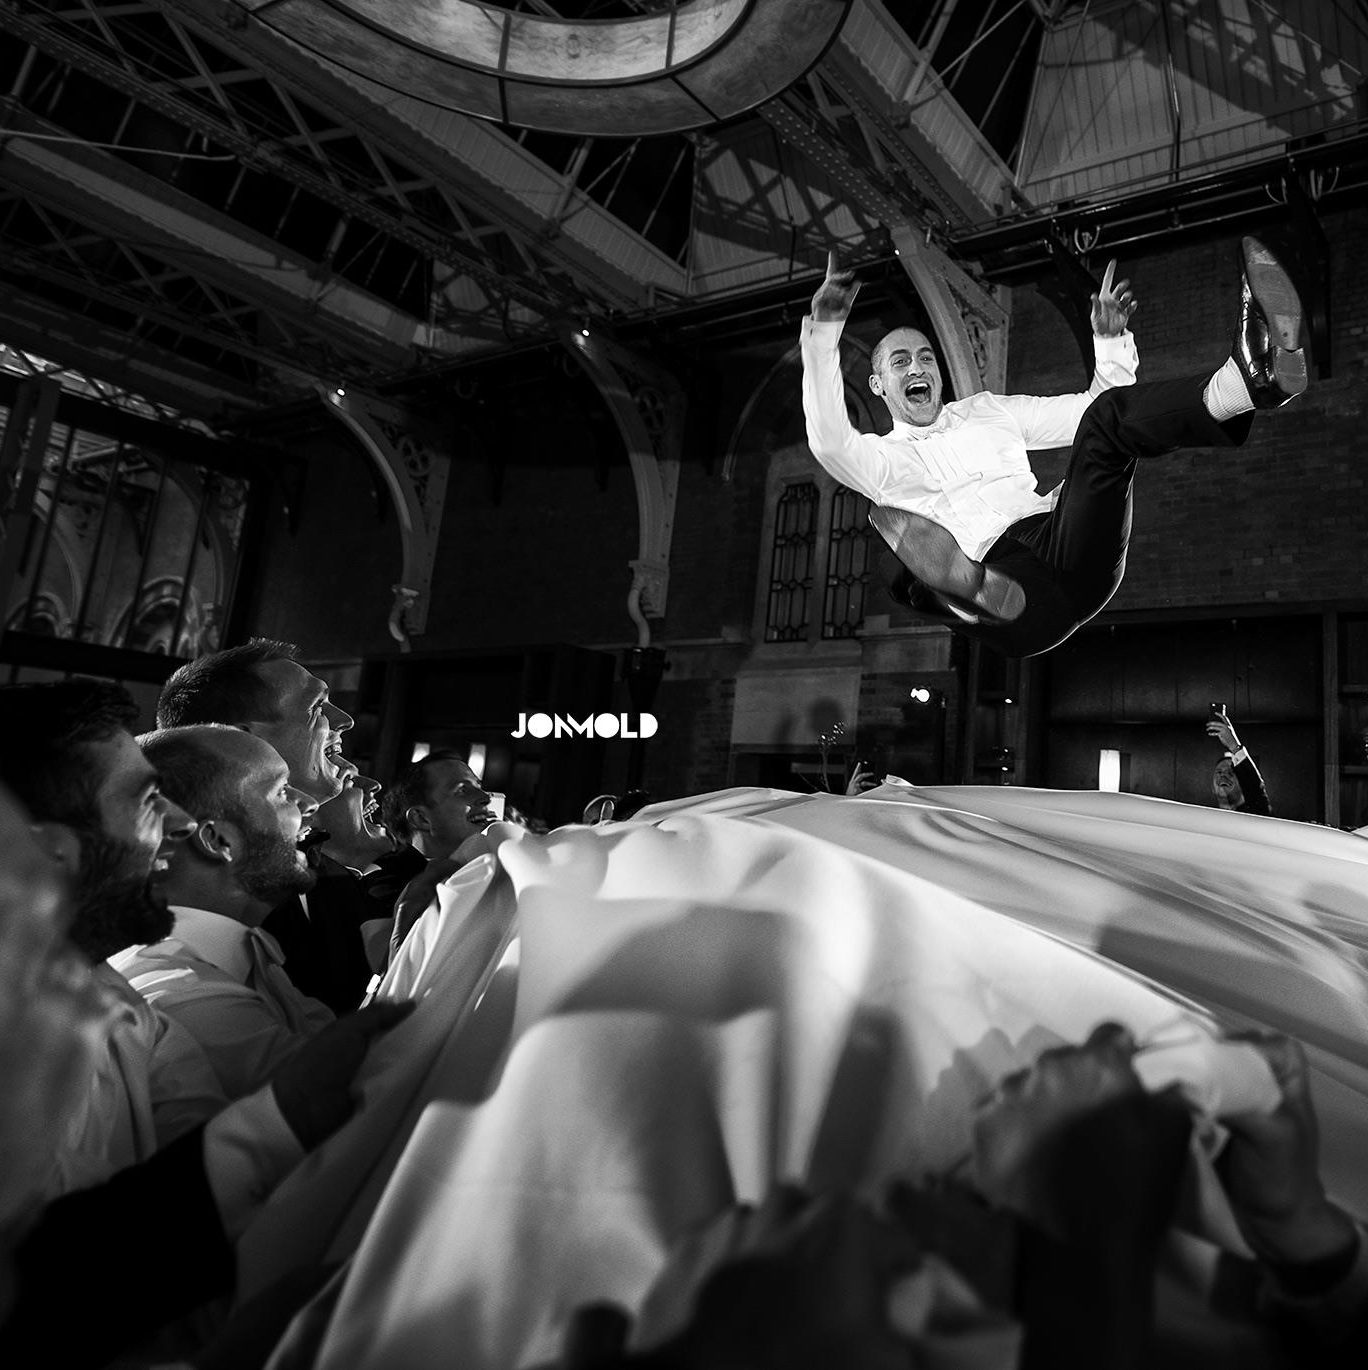 Me flying through the air on my wedding day - image by the incredible  Jon Mold .